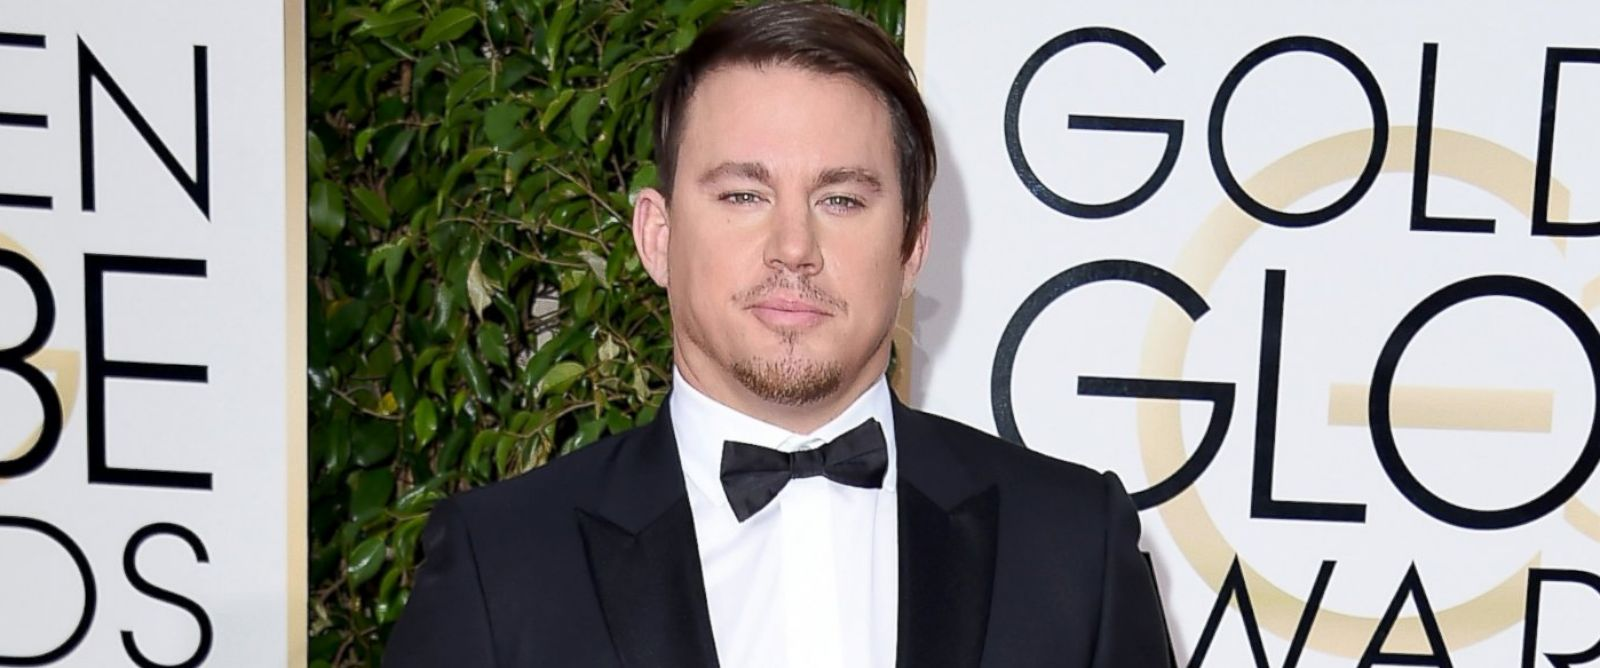 PHOTO: Channing Tatum attends the 73rd Annual Golden Globe Awards held at the Beverly Hilton Hotel, Jan. 10, 2016, in Beverly Hills, Calif.